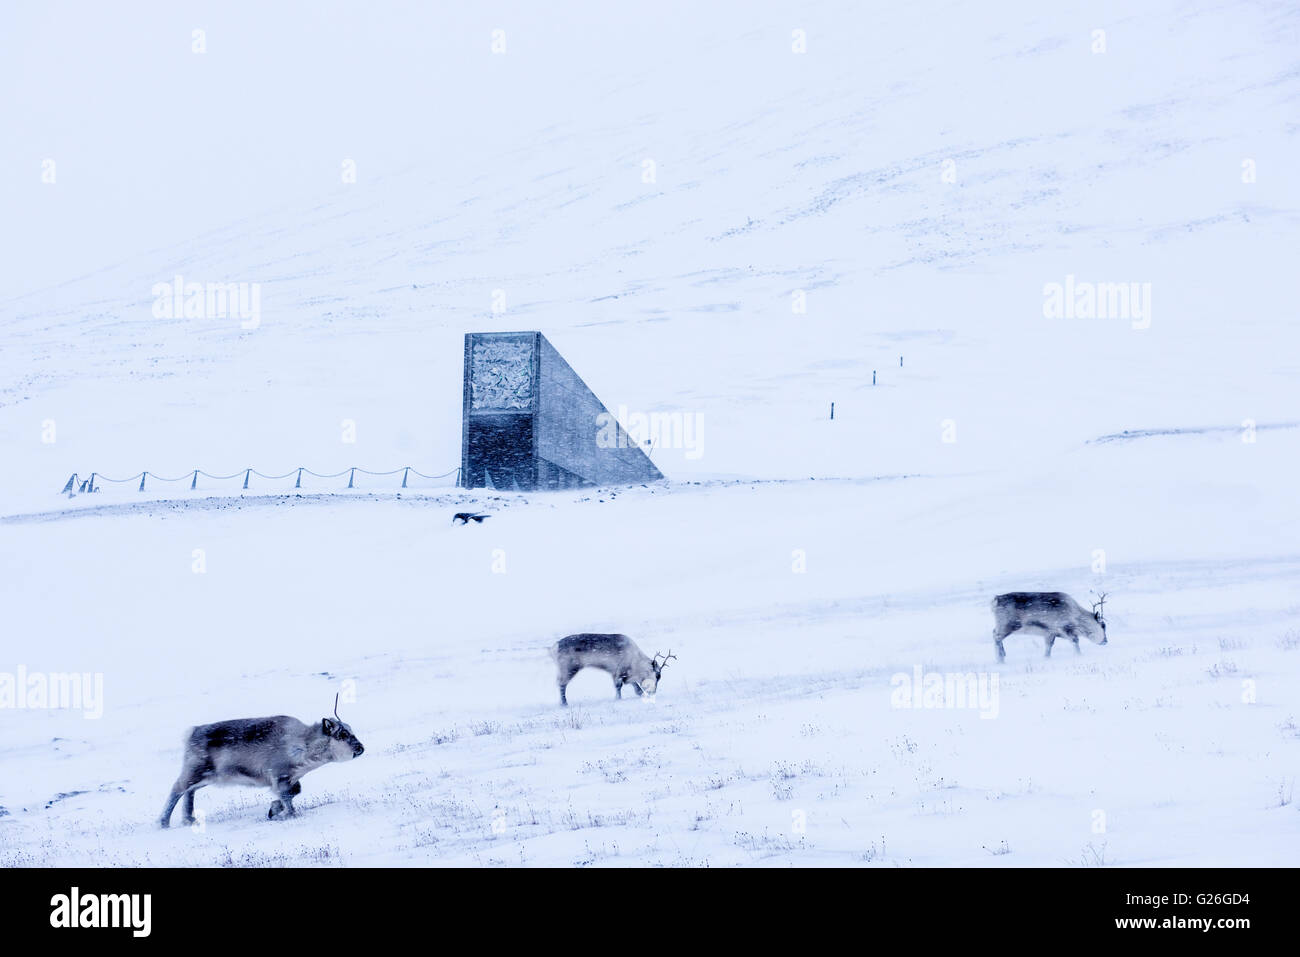 Svalbard Reindeers with Svalbard Global Seed Vault in the background in Winter Longyearbyen, Svalbard, Spitsbergen, - Stock Image